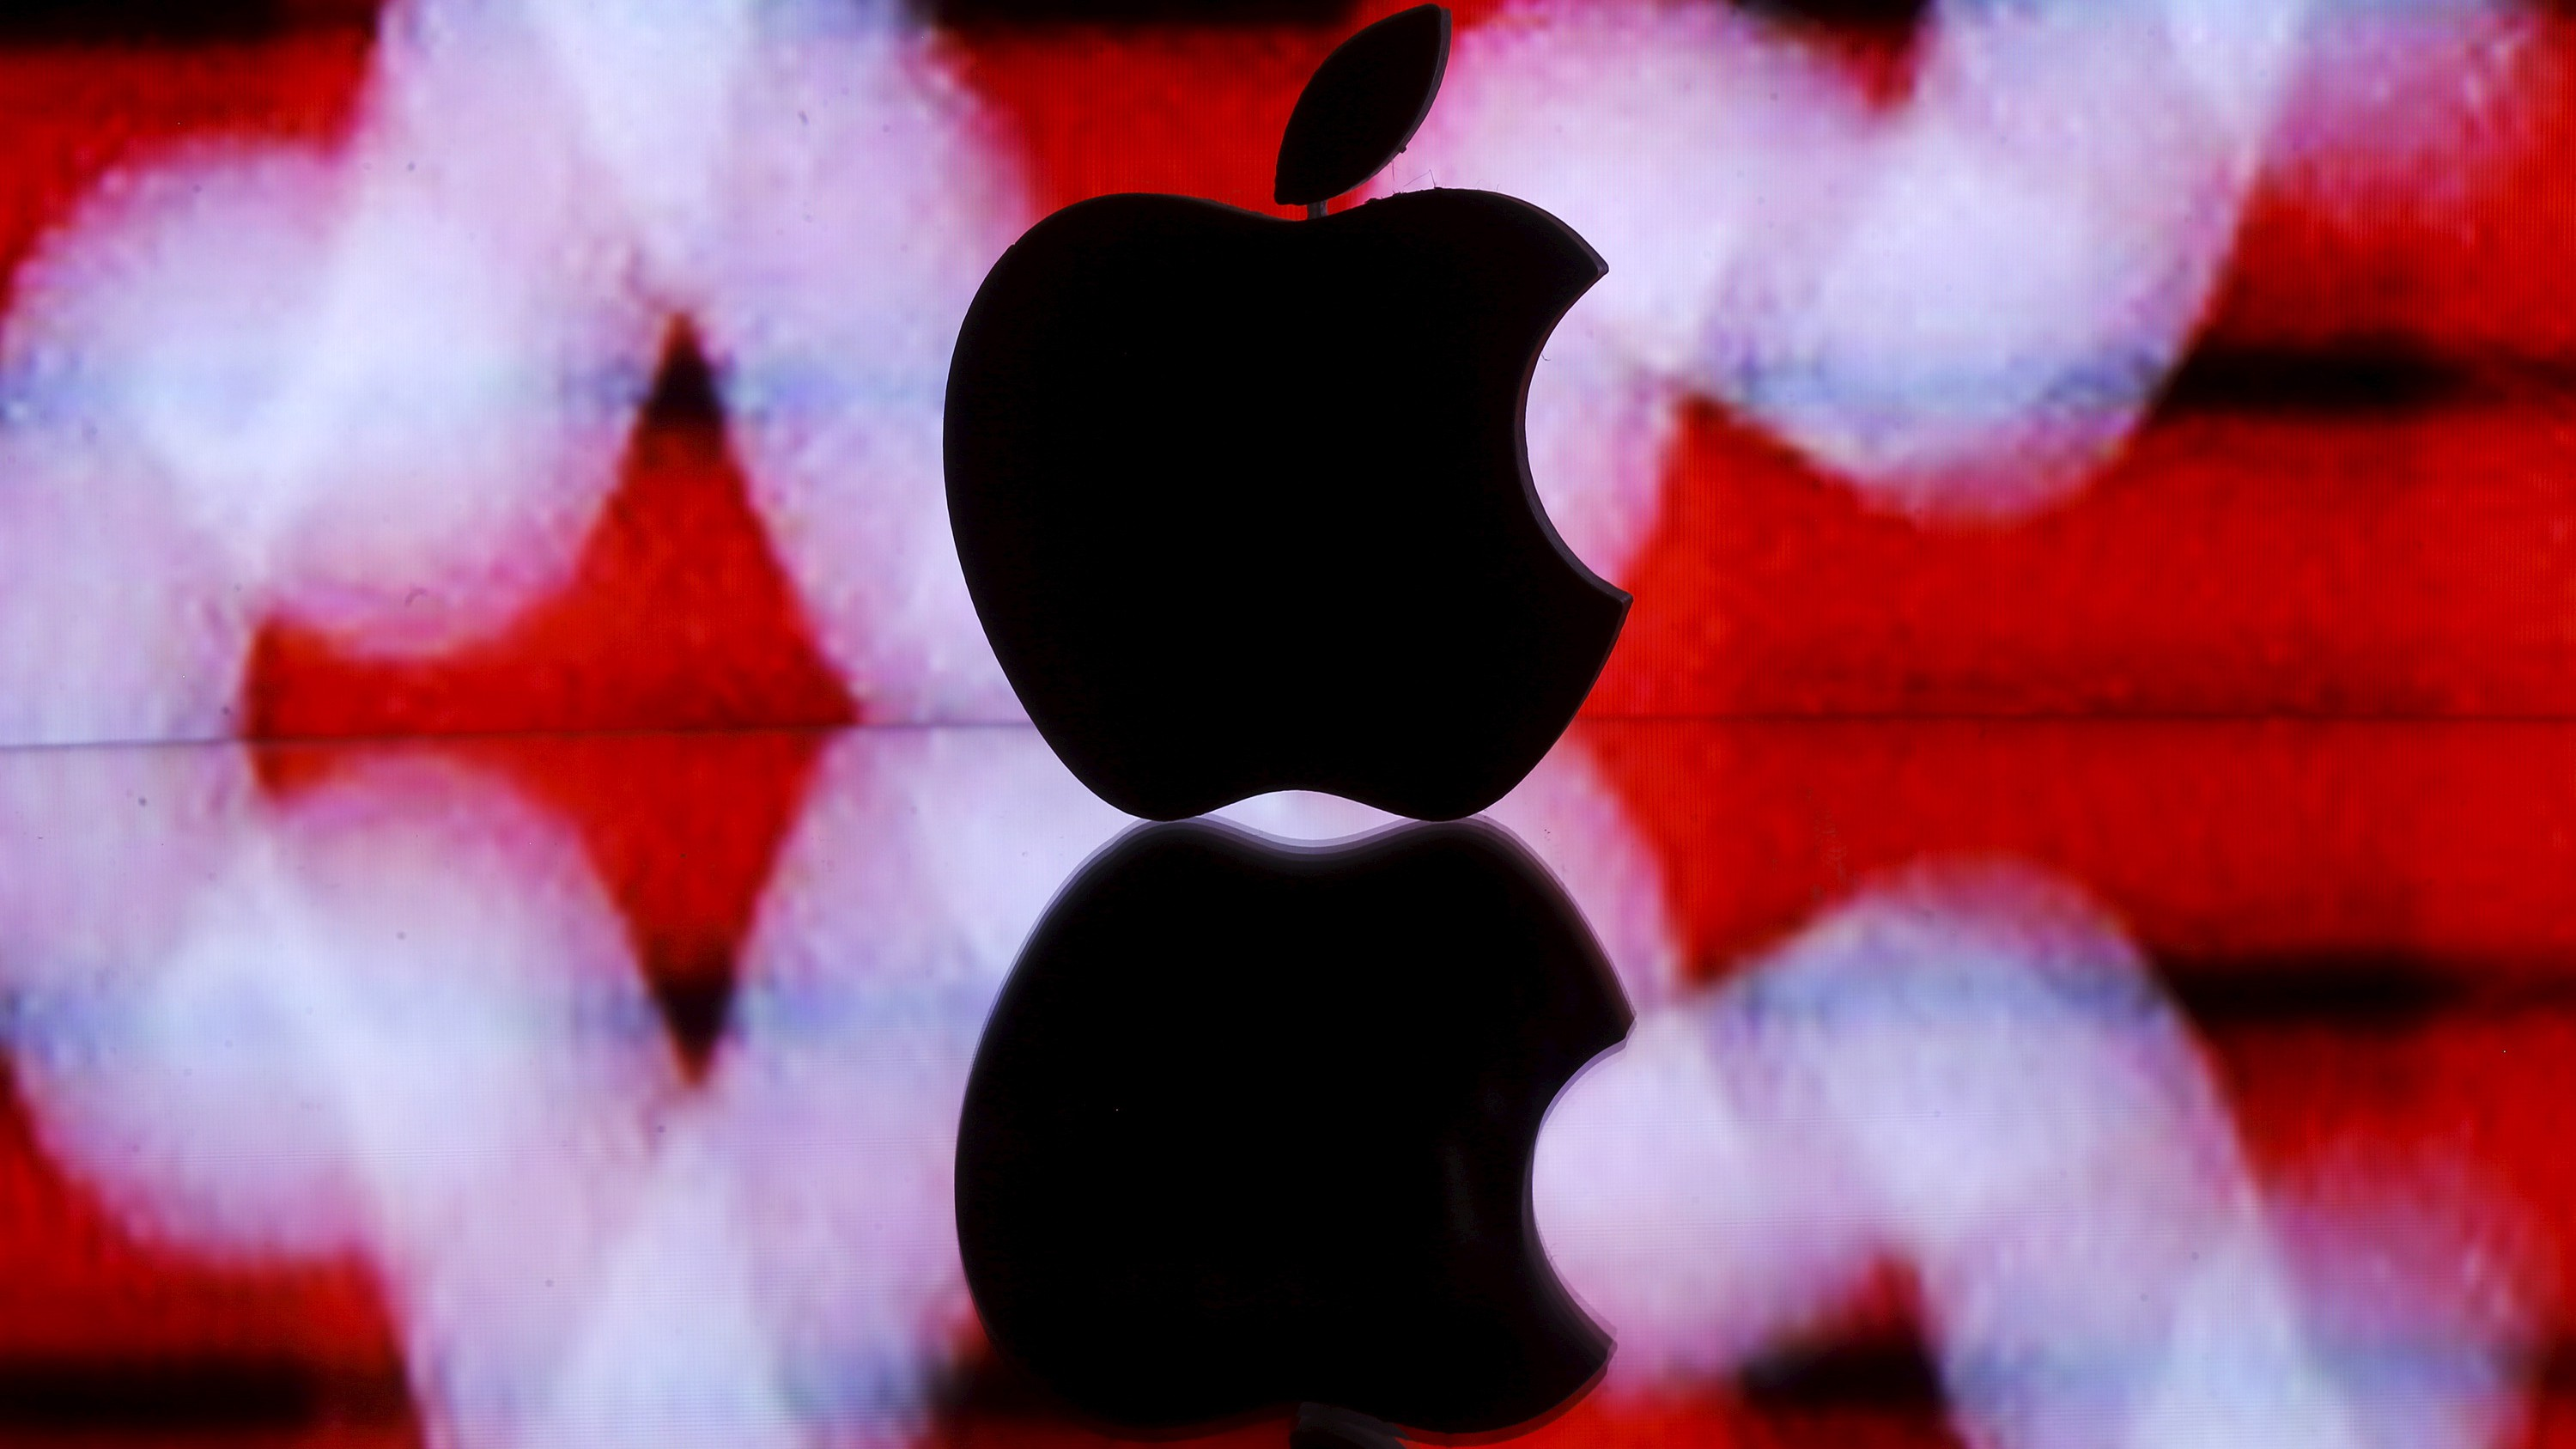 A 3D printed Apple logo is seen in front of a displayed stock graph in this illustration taken February 26, 2016. Apple Inc's stance on privacy in the face of a U.S. government demand to unlock an iPhone belonging to one of the San Bernardino attackers has raised awkward questions for the world's mobile network operators. Top executives at this week's global telecom industry gathering in Barcelona admit they are constantly trying to strike a balance between the expectations and demands of their own users, government regulators and national politicians. REUTERS/Dado Ruvic/Illustration - RTX28QX3